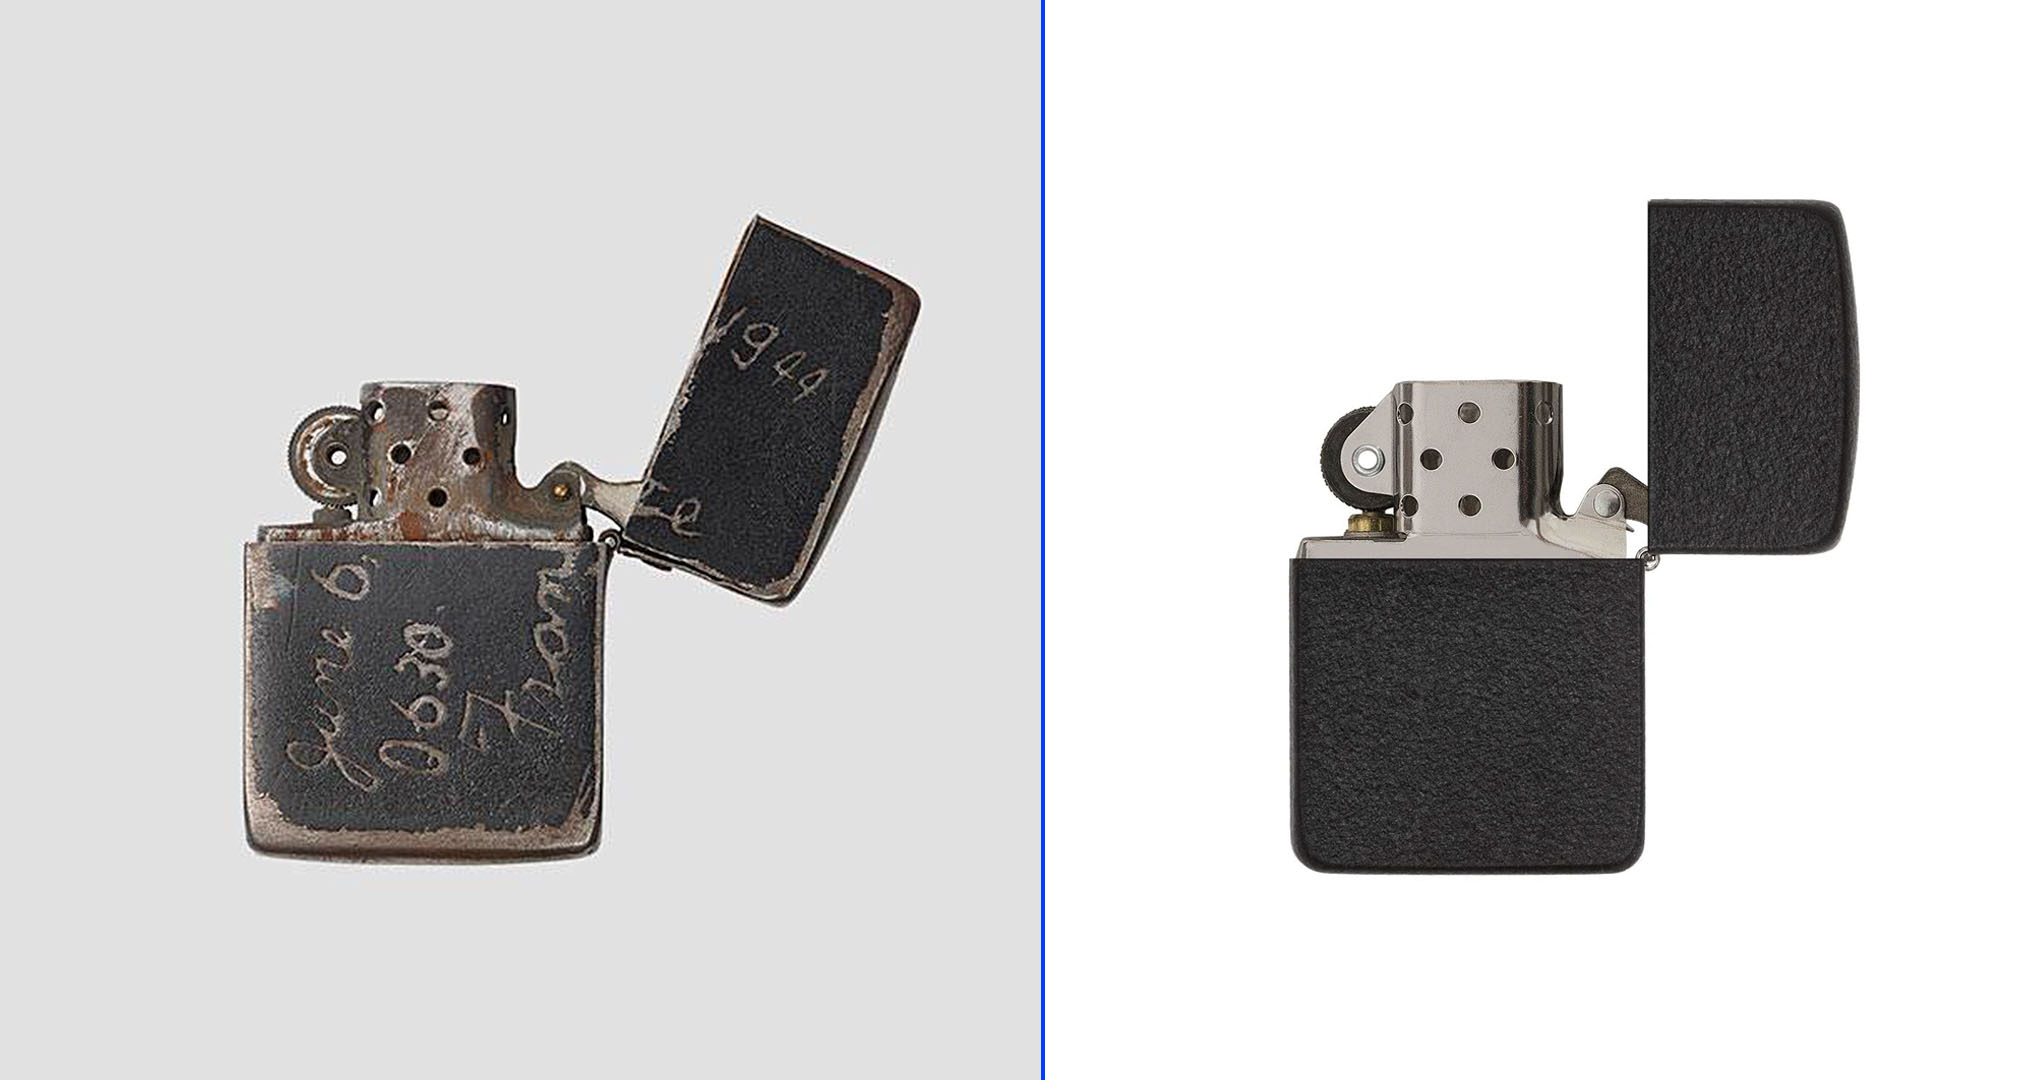 Comparativa del Zippo Black Crackle original y el moderno